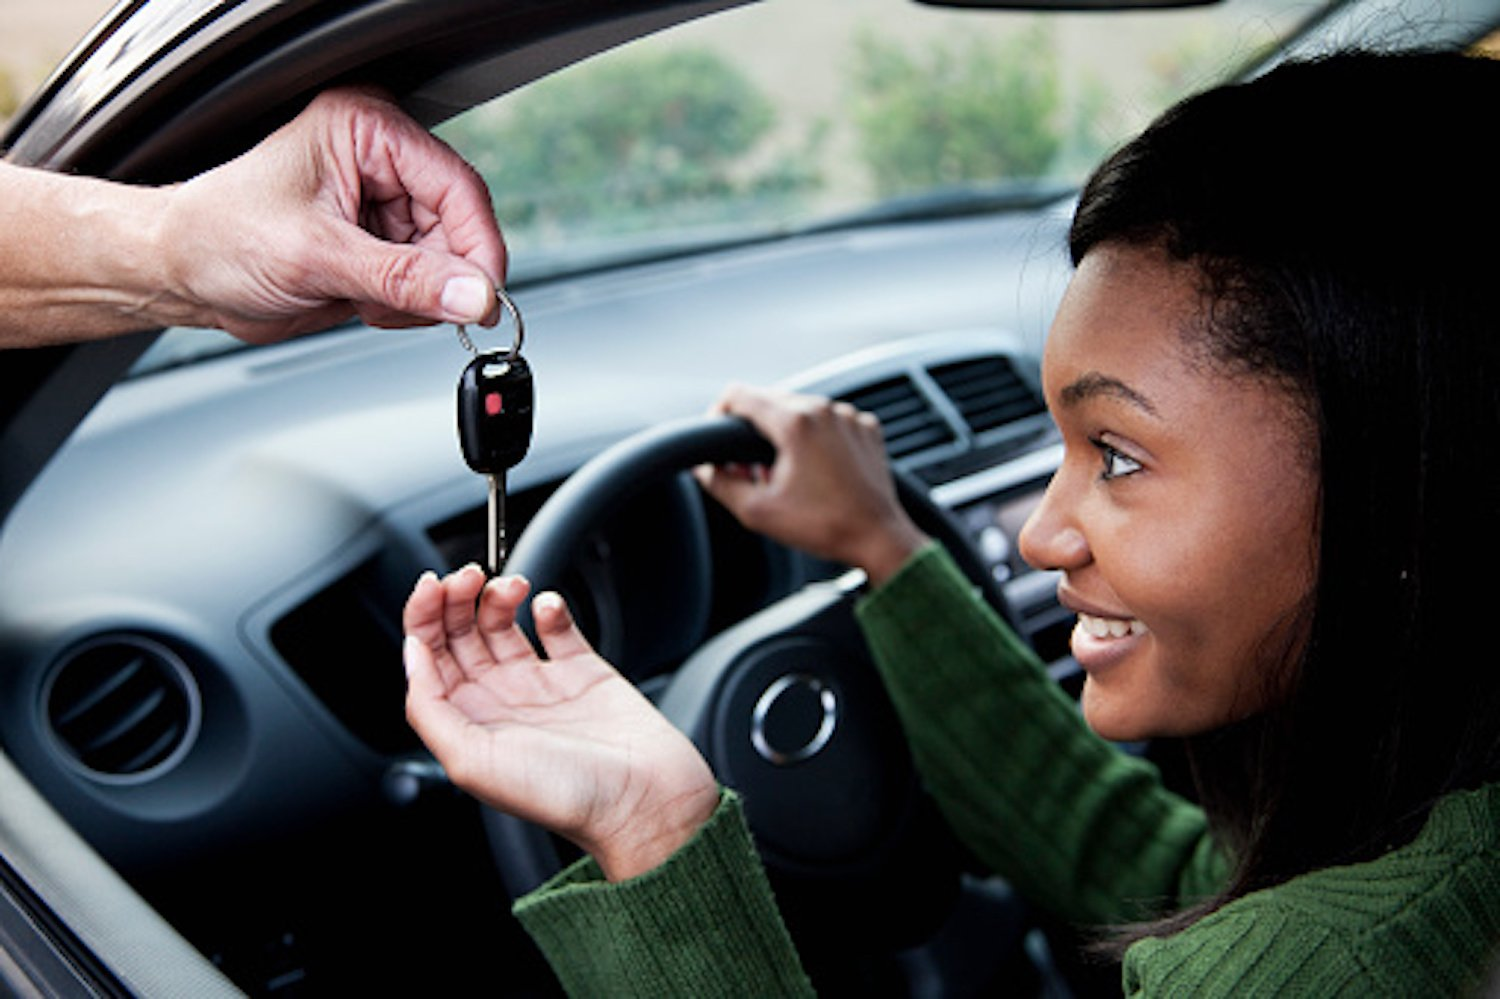 teen getting car keys to drive